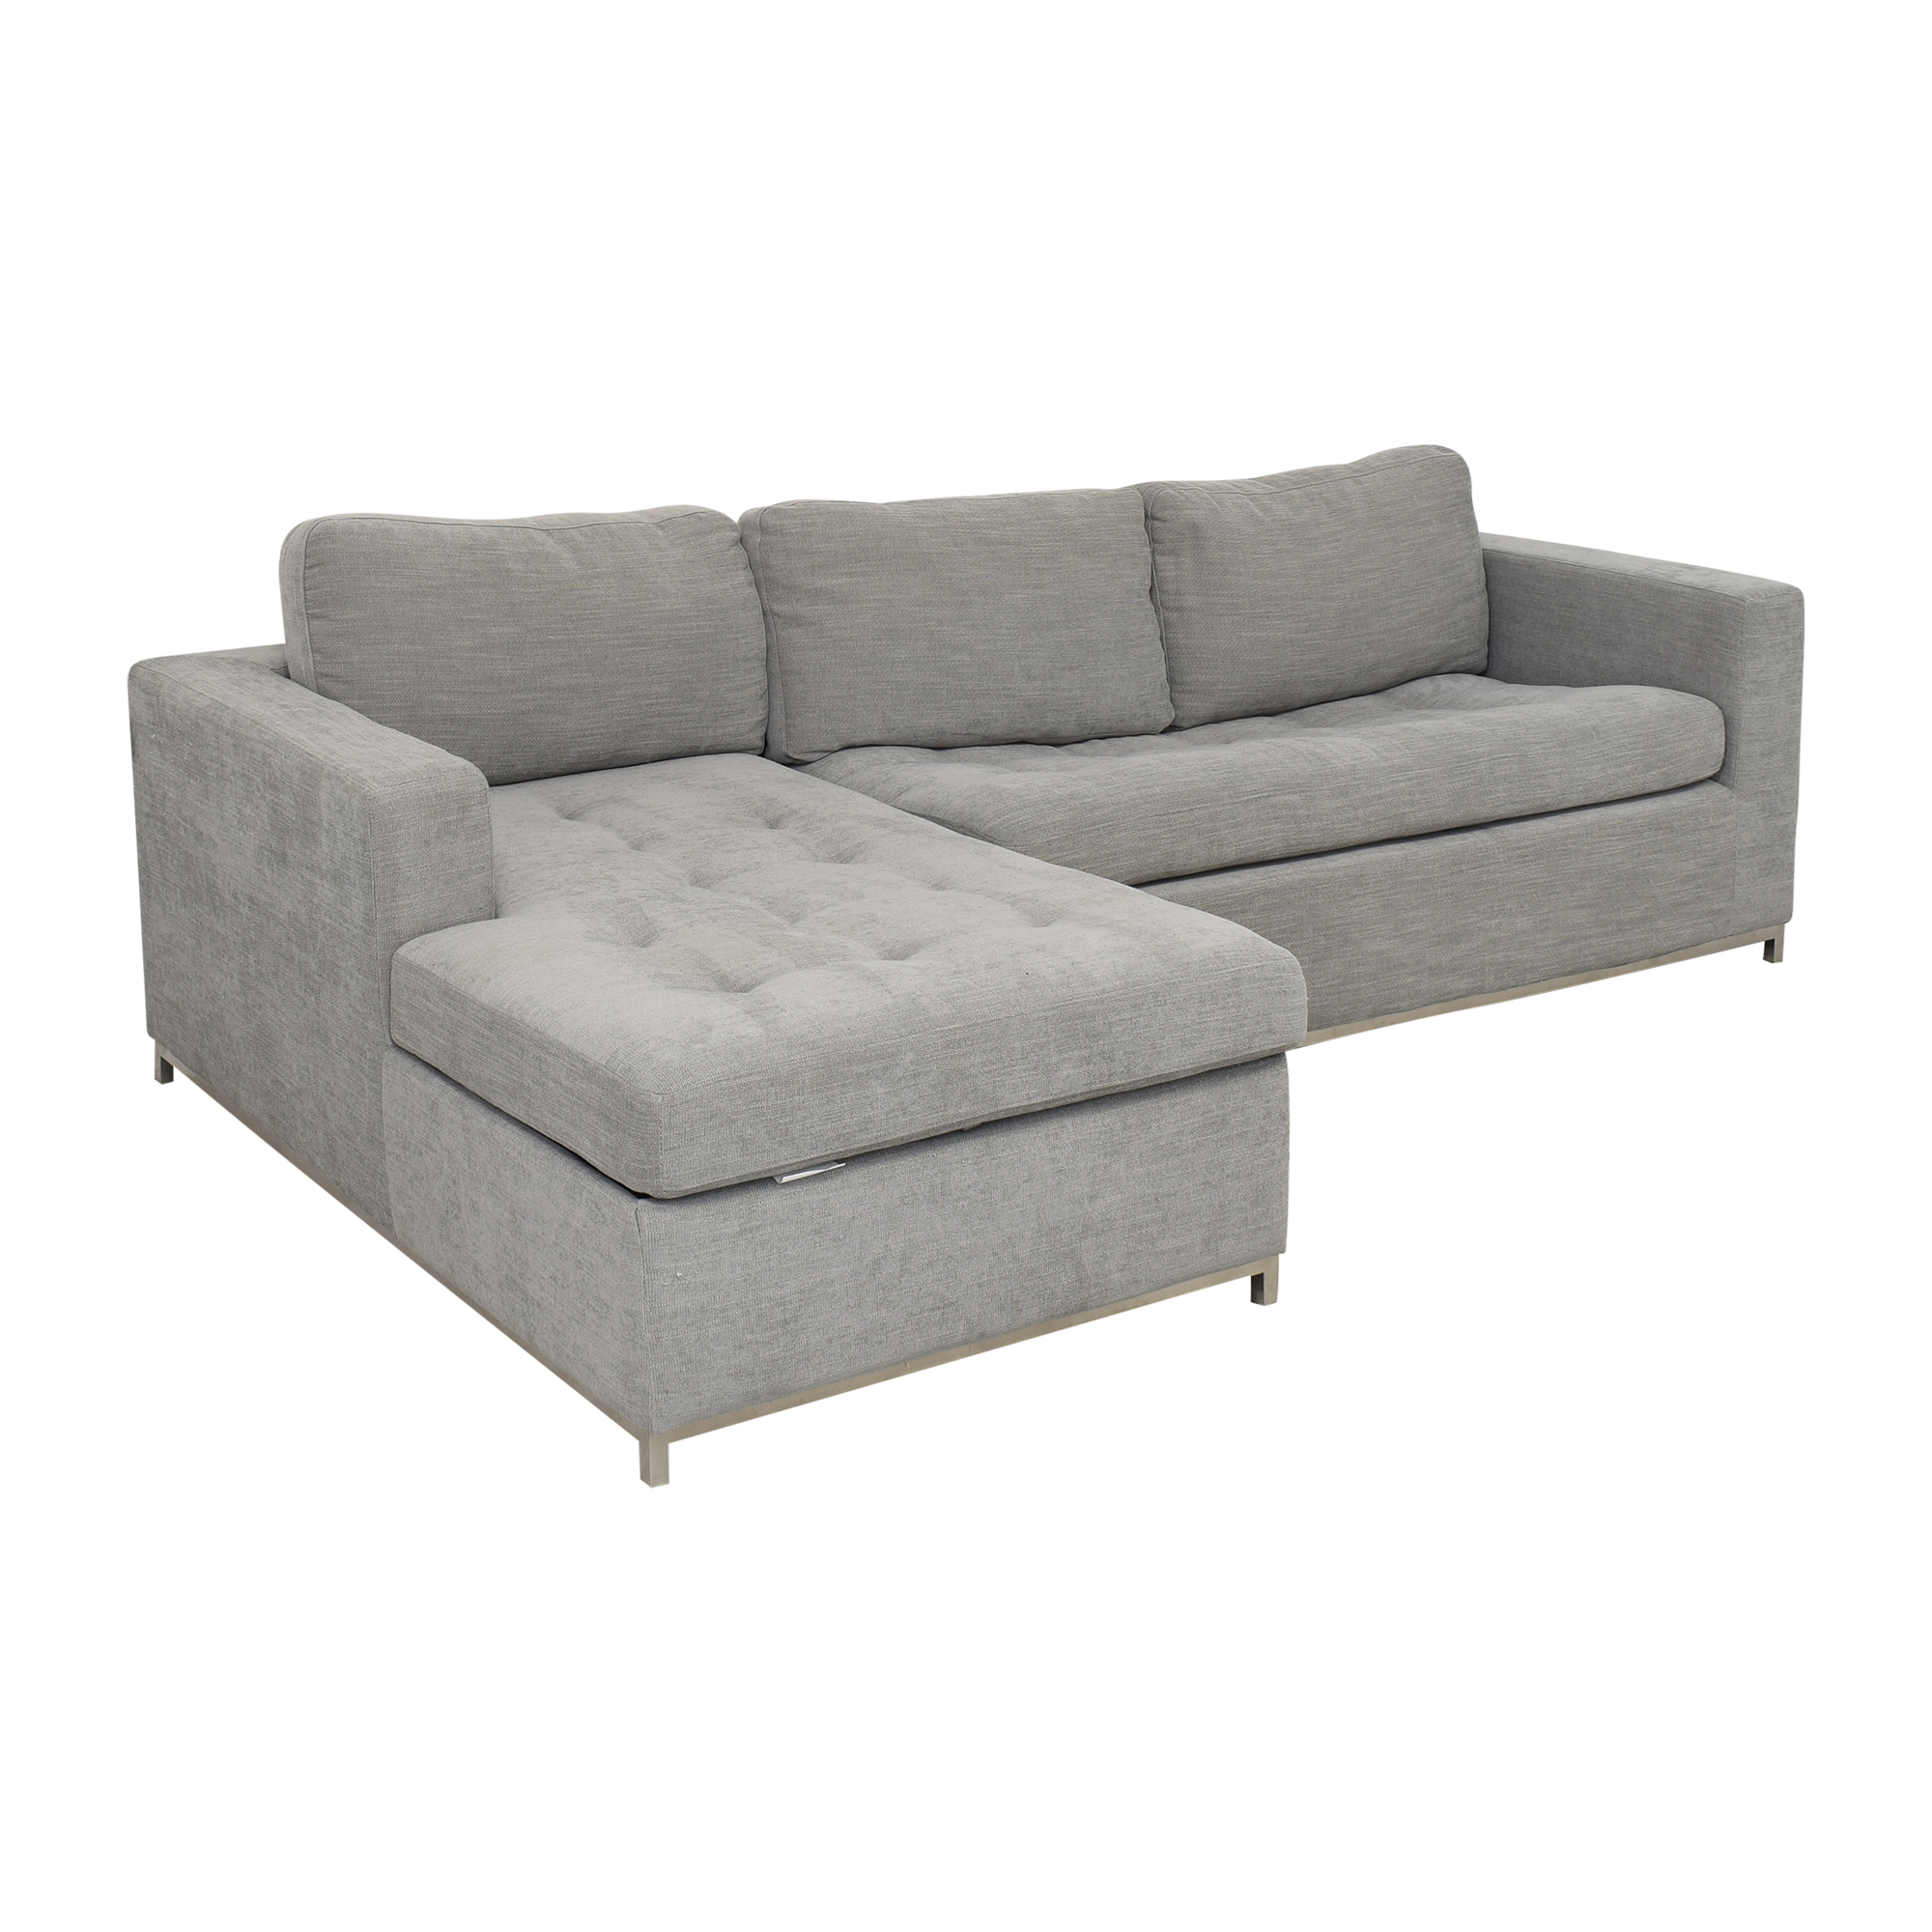 Article Soma Sofa Bed sale